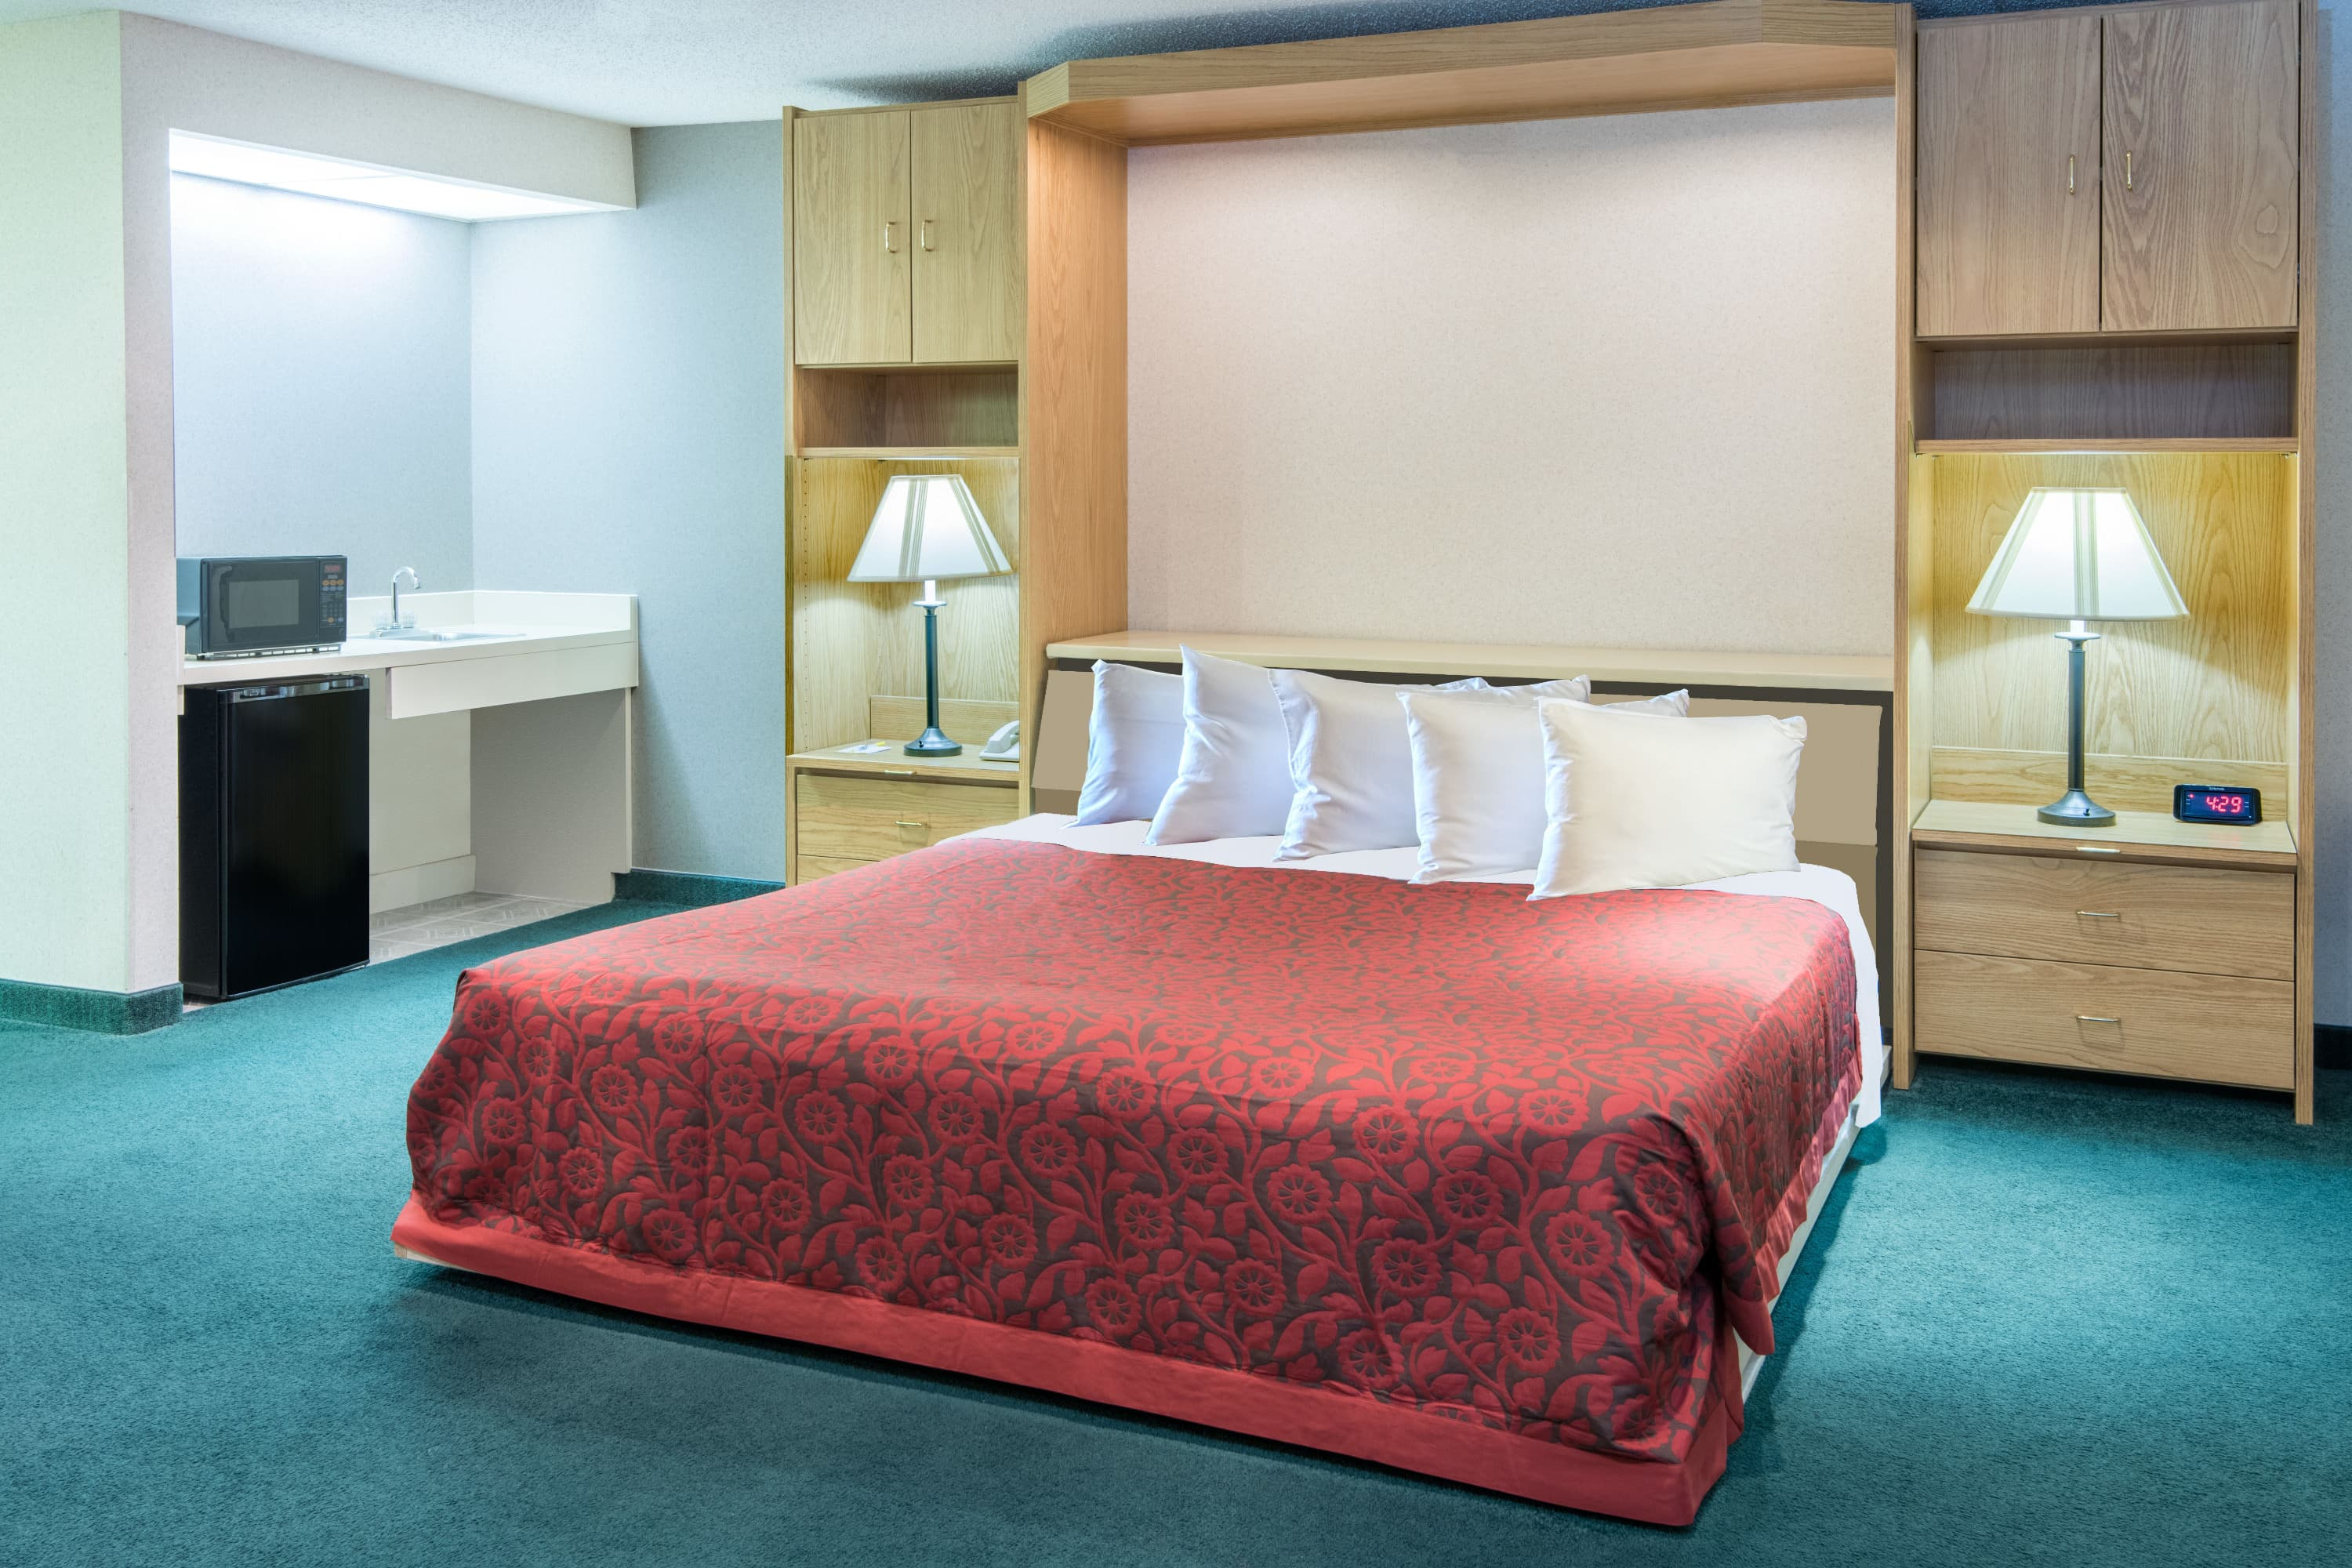 Days Inn Wooster suite in Wooster, Ohio